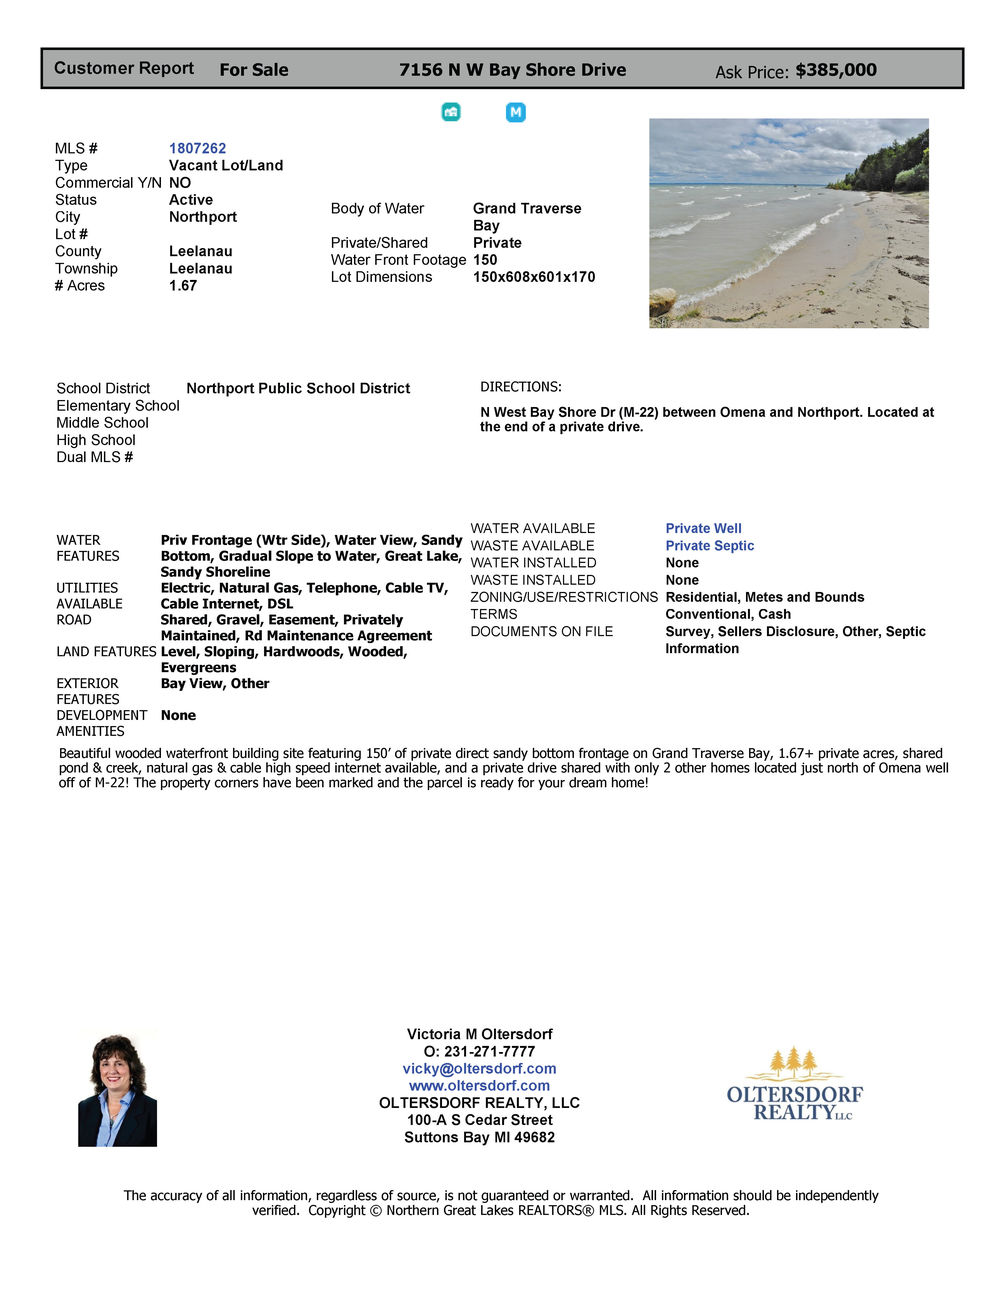 7156 N W Bay Shore Drive, Northport, MI Vacant waterfront lot for sale by Oltersdorf Realty LLC Marketing Packet (4).jpg